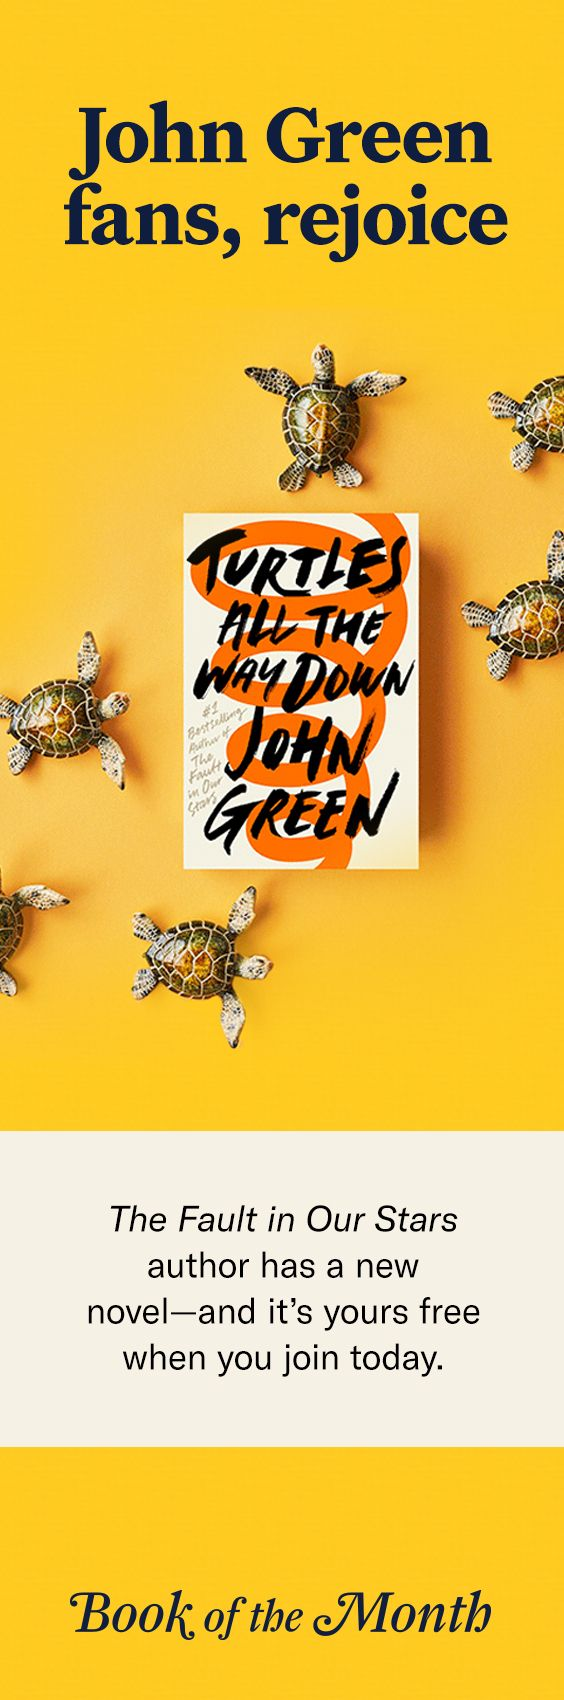 """Get """"Turtles All the Way Down"""" free when you join Book of the Month with code GREEN. Offer expires 10/21. Head to bookofthemonth.com to learn more."""